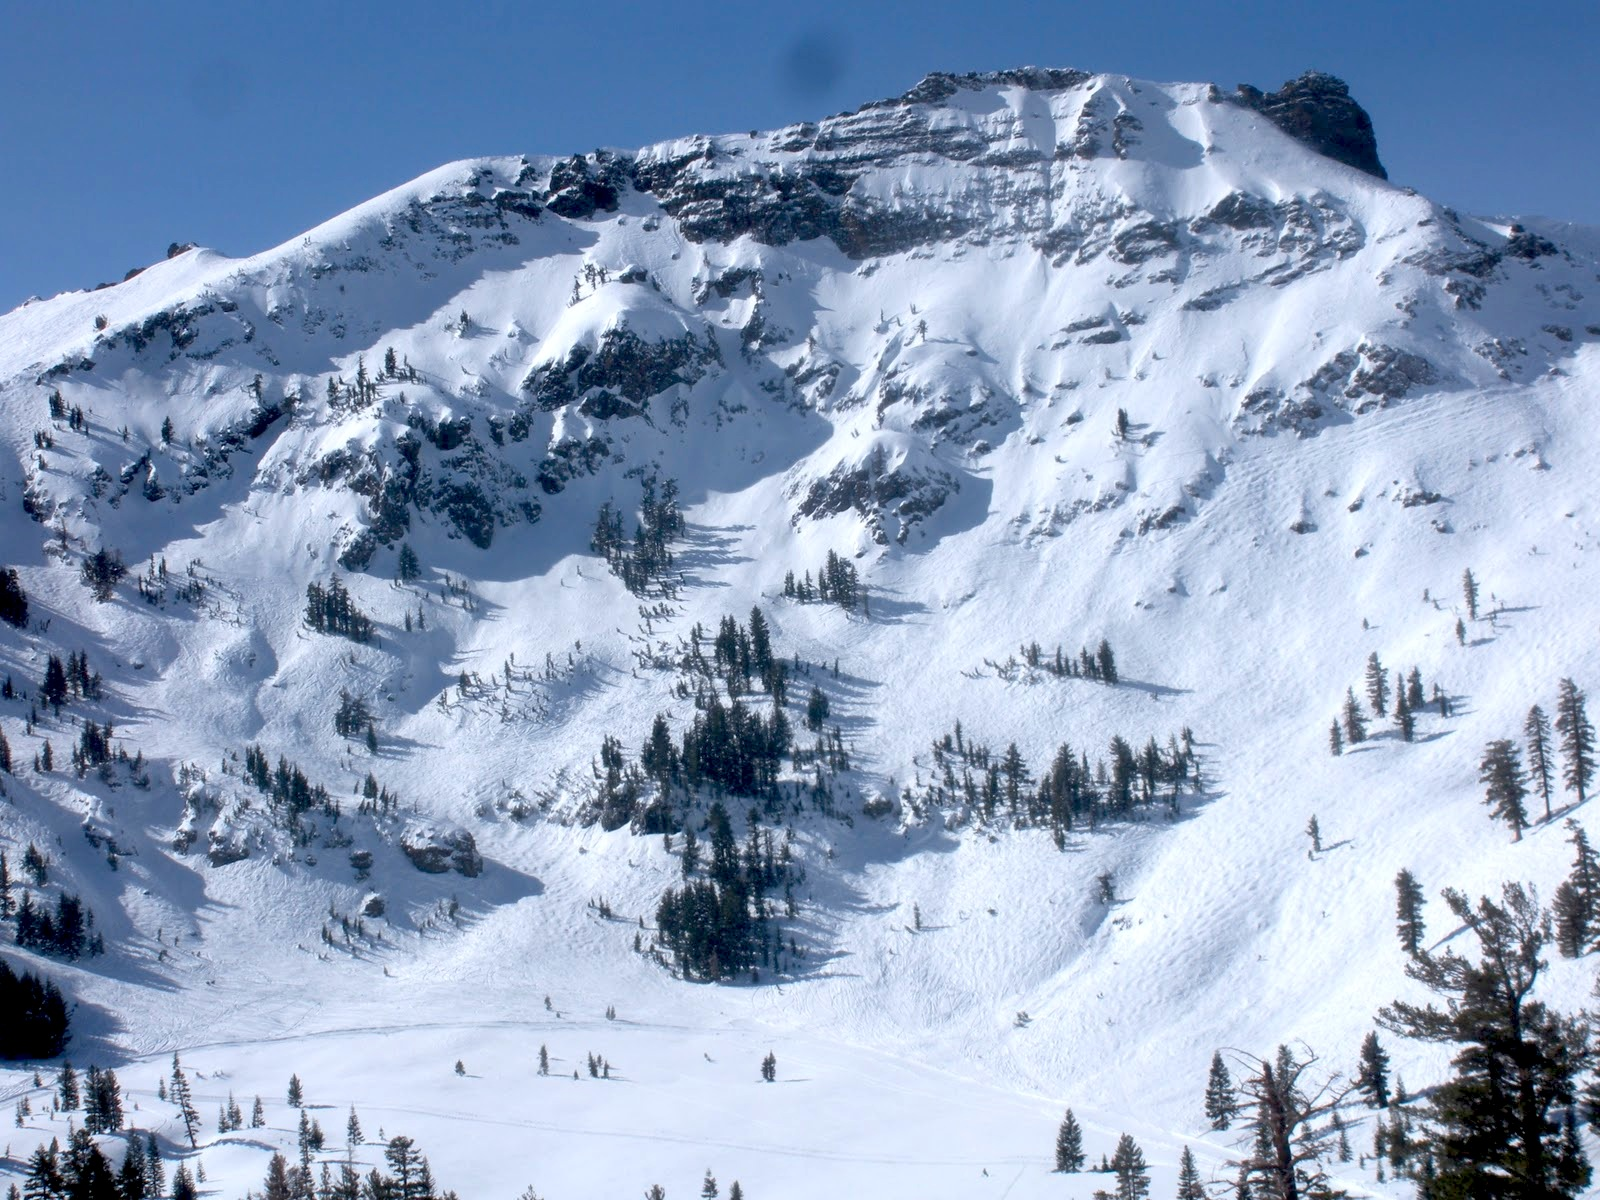 not enough snow @ kirkwood, ca = freeride world tour moved to